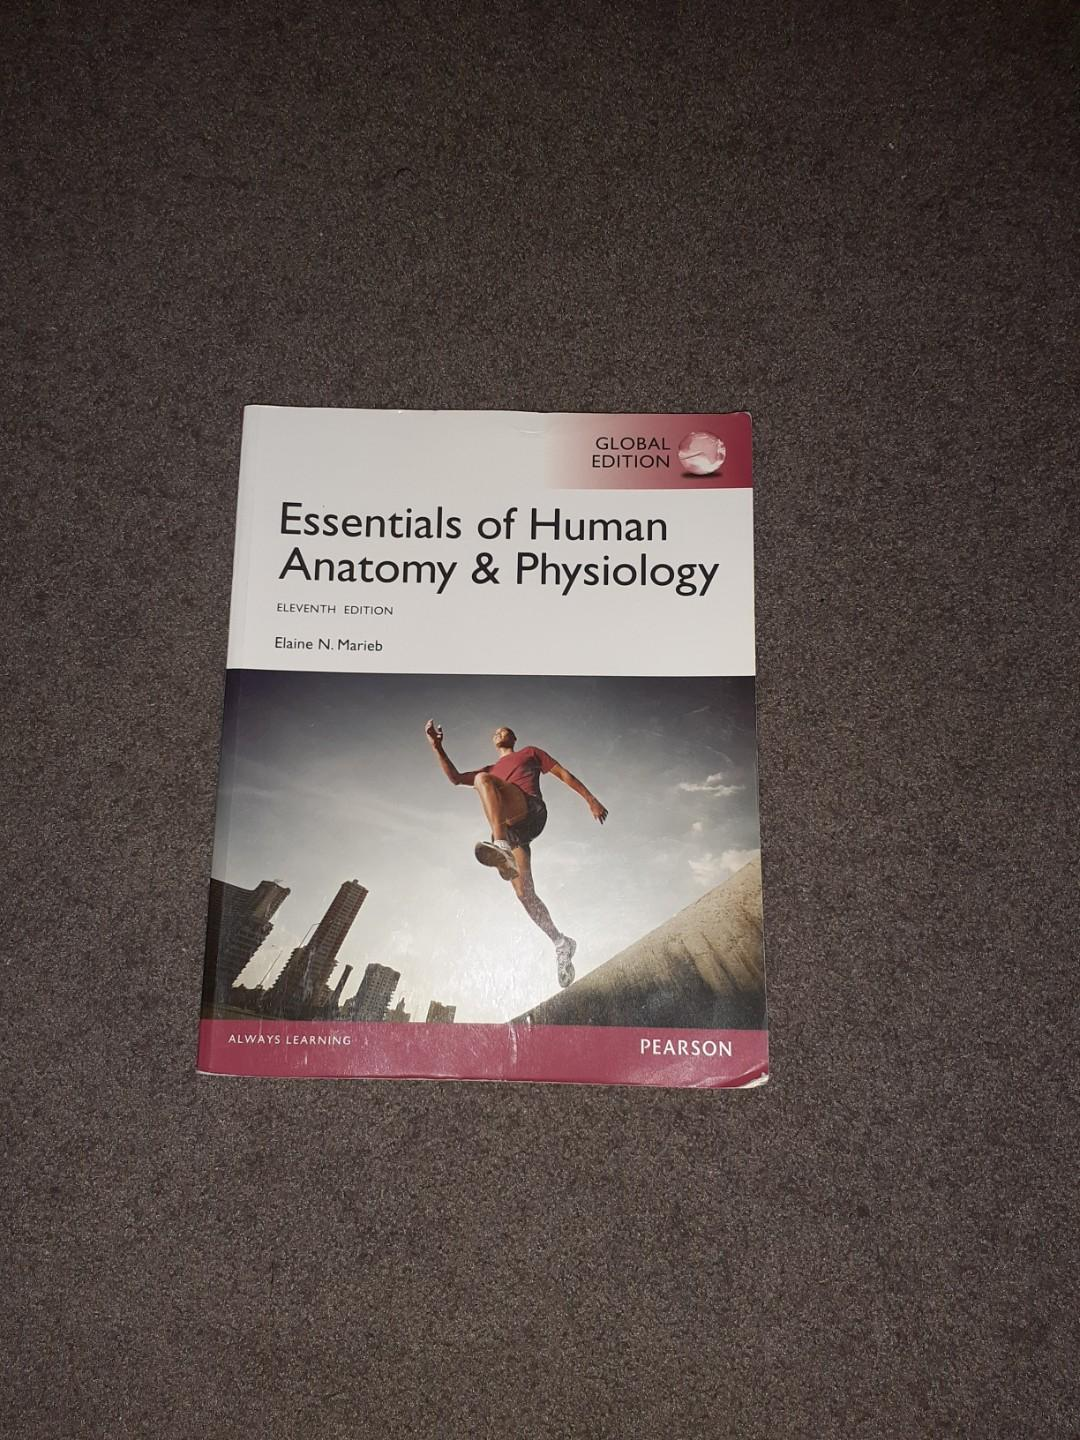 Essentials of Human Anatomy and Physiology textbook